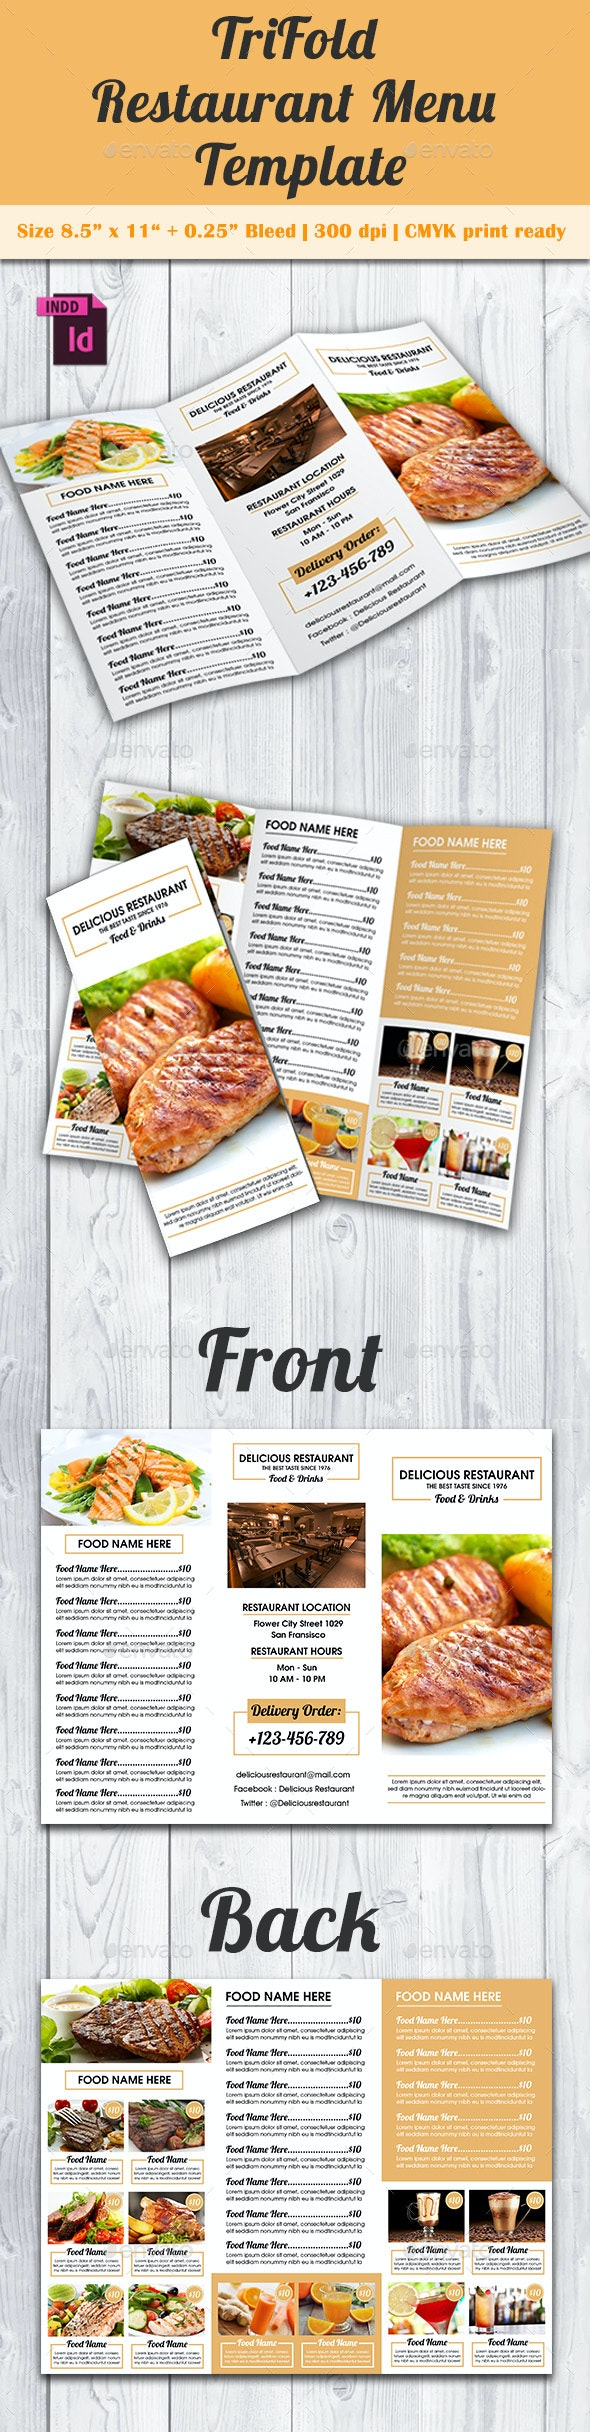 TriFold Restaurant Menu Template Vol. 9